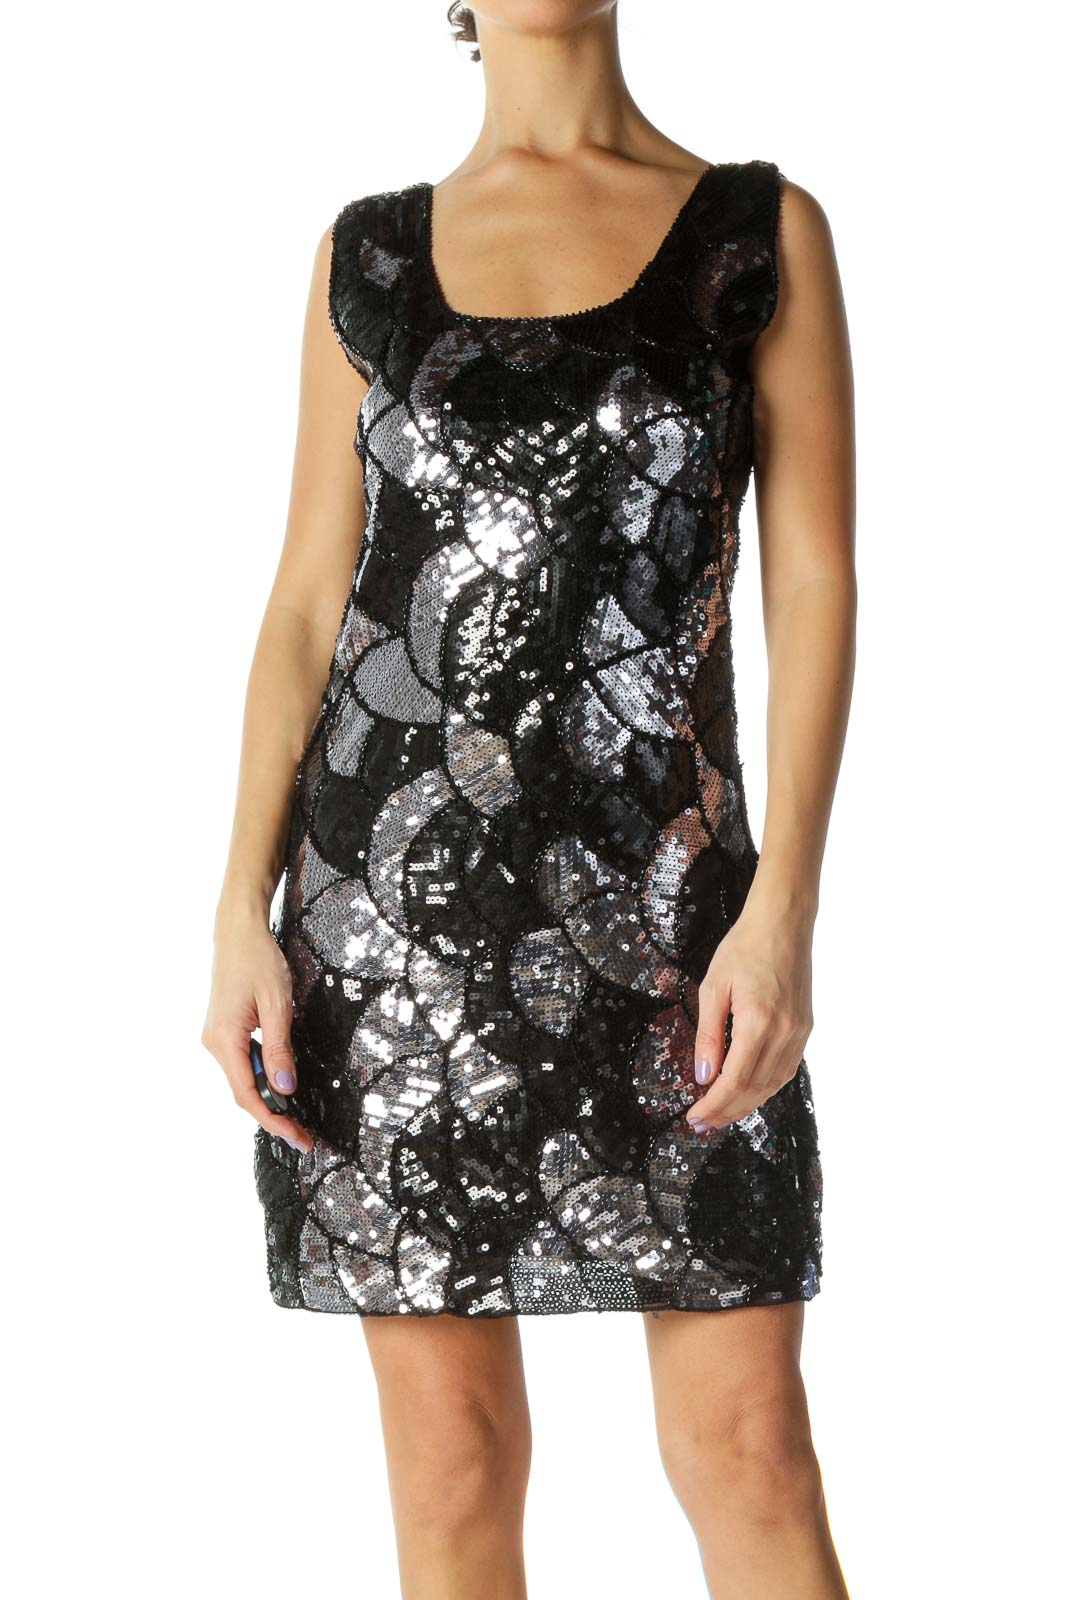 Black Sequined Dress Front